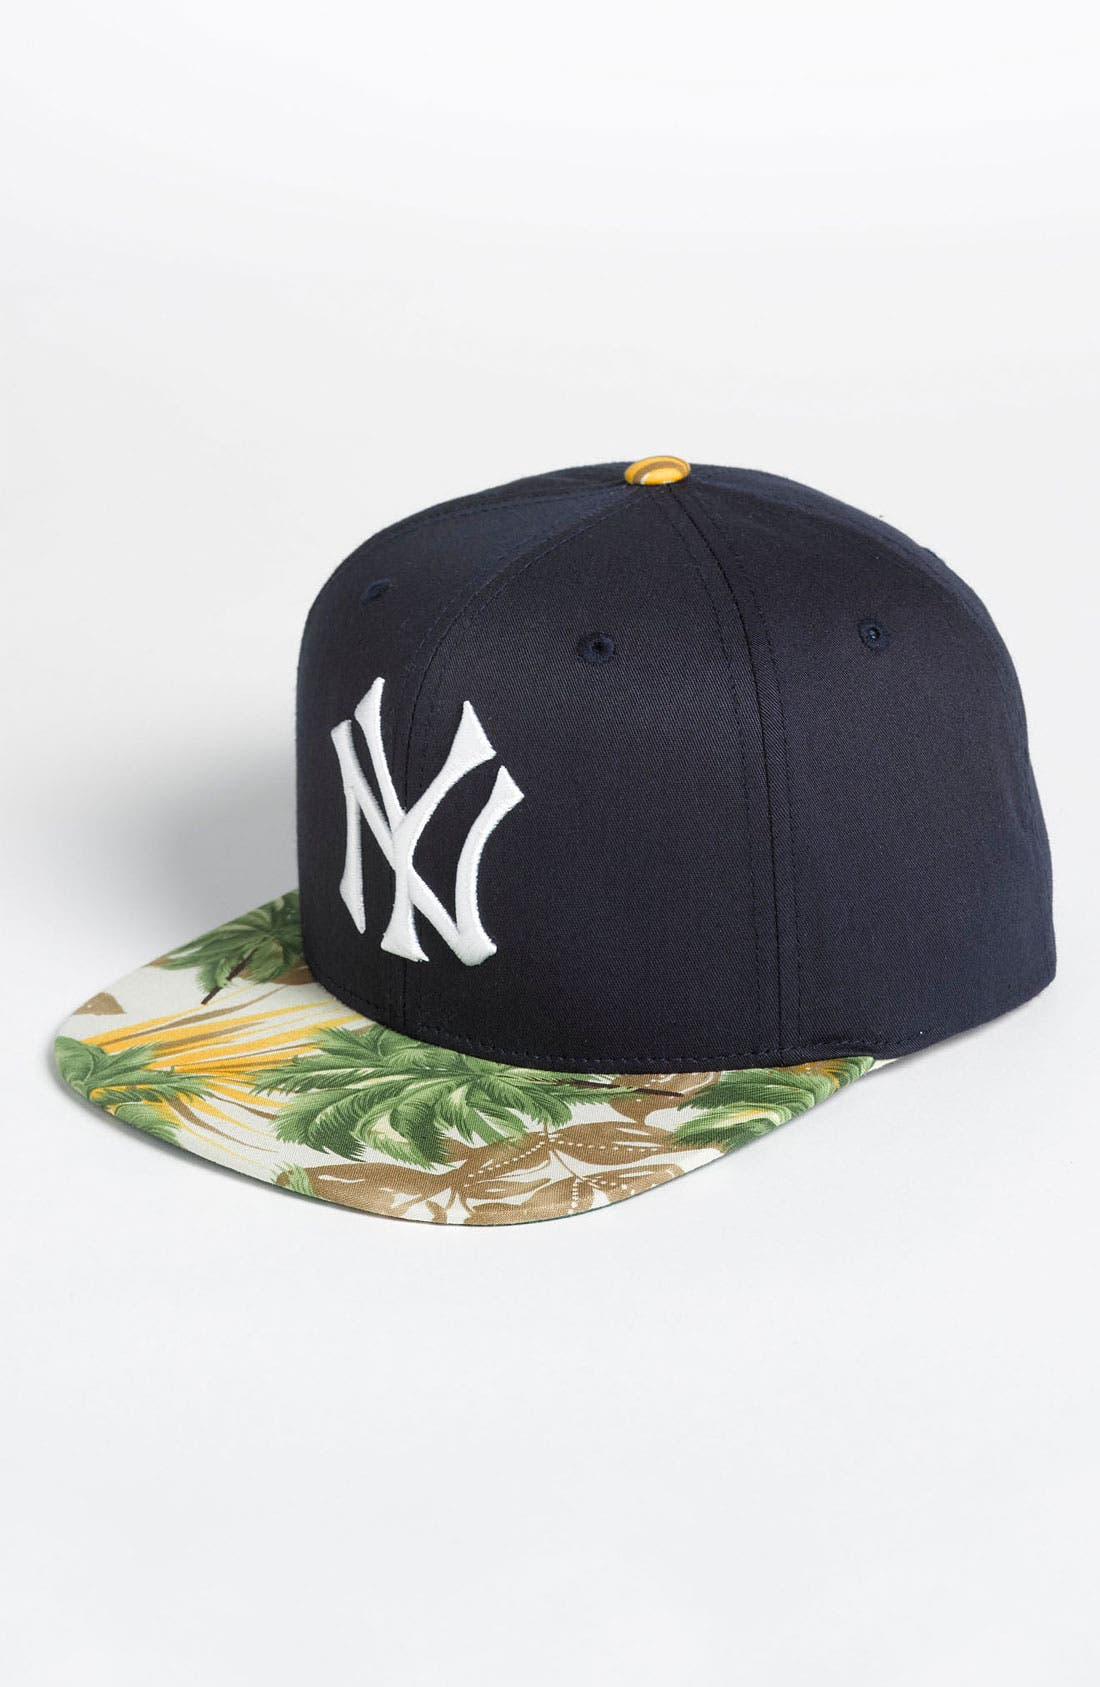 Alternate Image 1 Selected - American Needle 'New York Yankees - Visor Trip' Baseball Cap